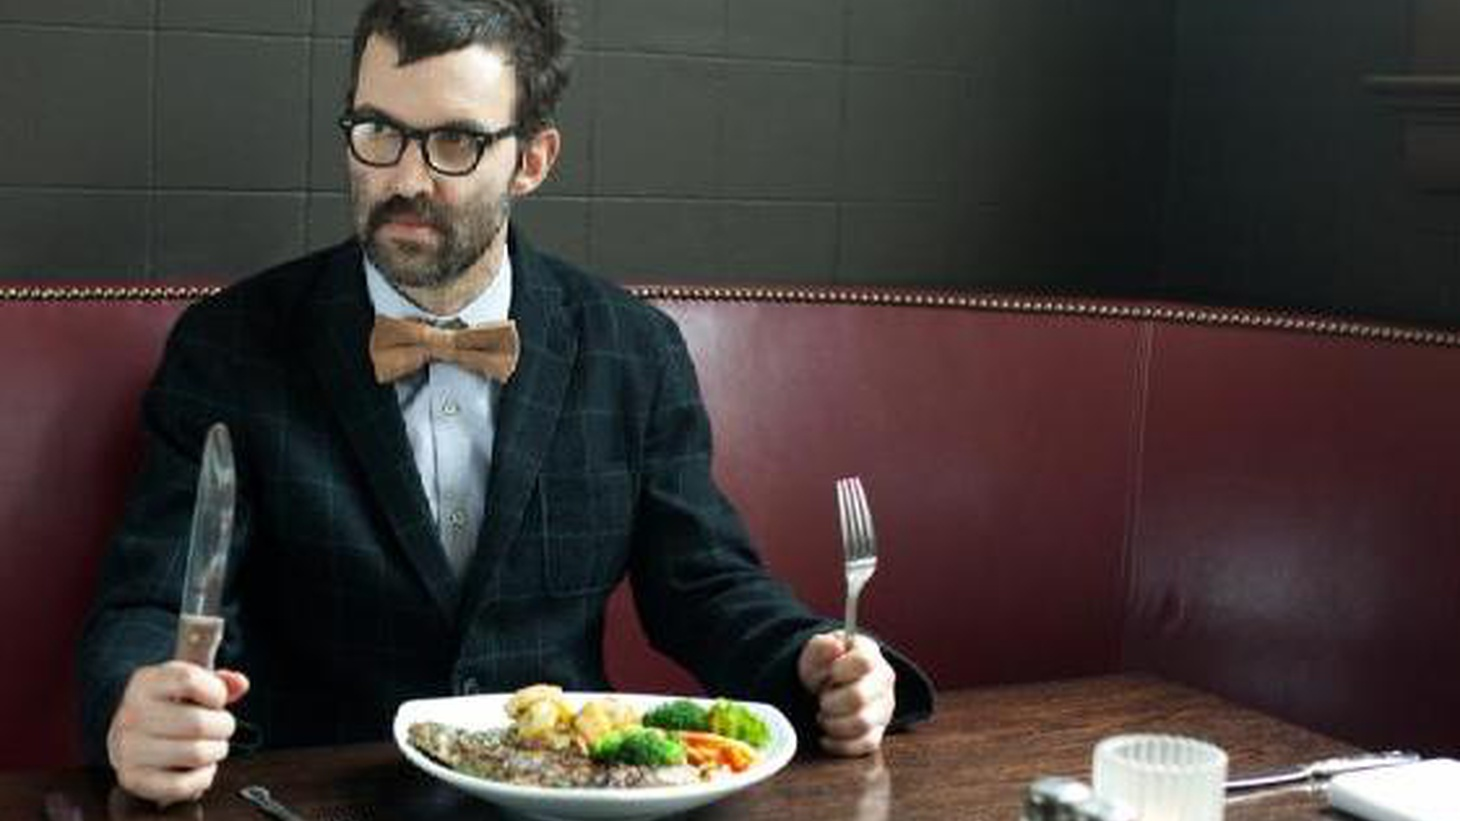 Eels front-man Mark Oliver Everett (best known as E) has an unflappable way of turning sadness into catharsis. A prolific and clever songwriter...